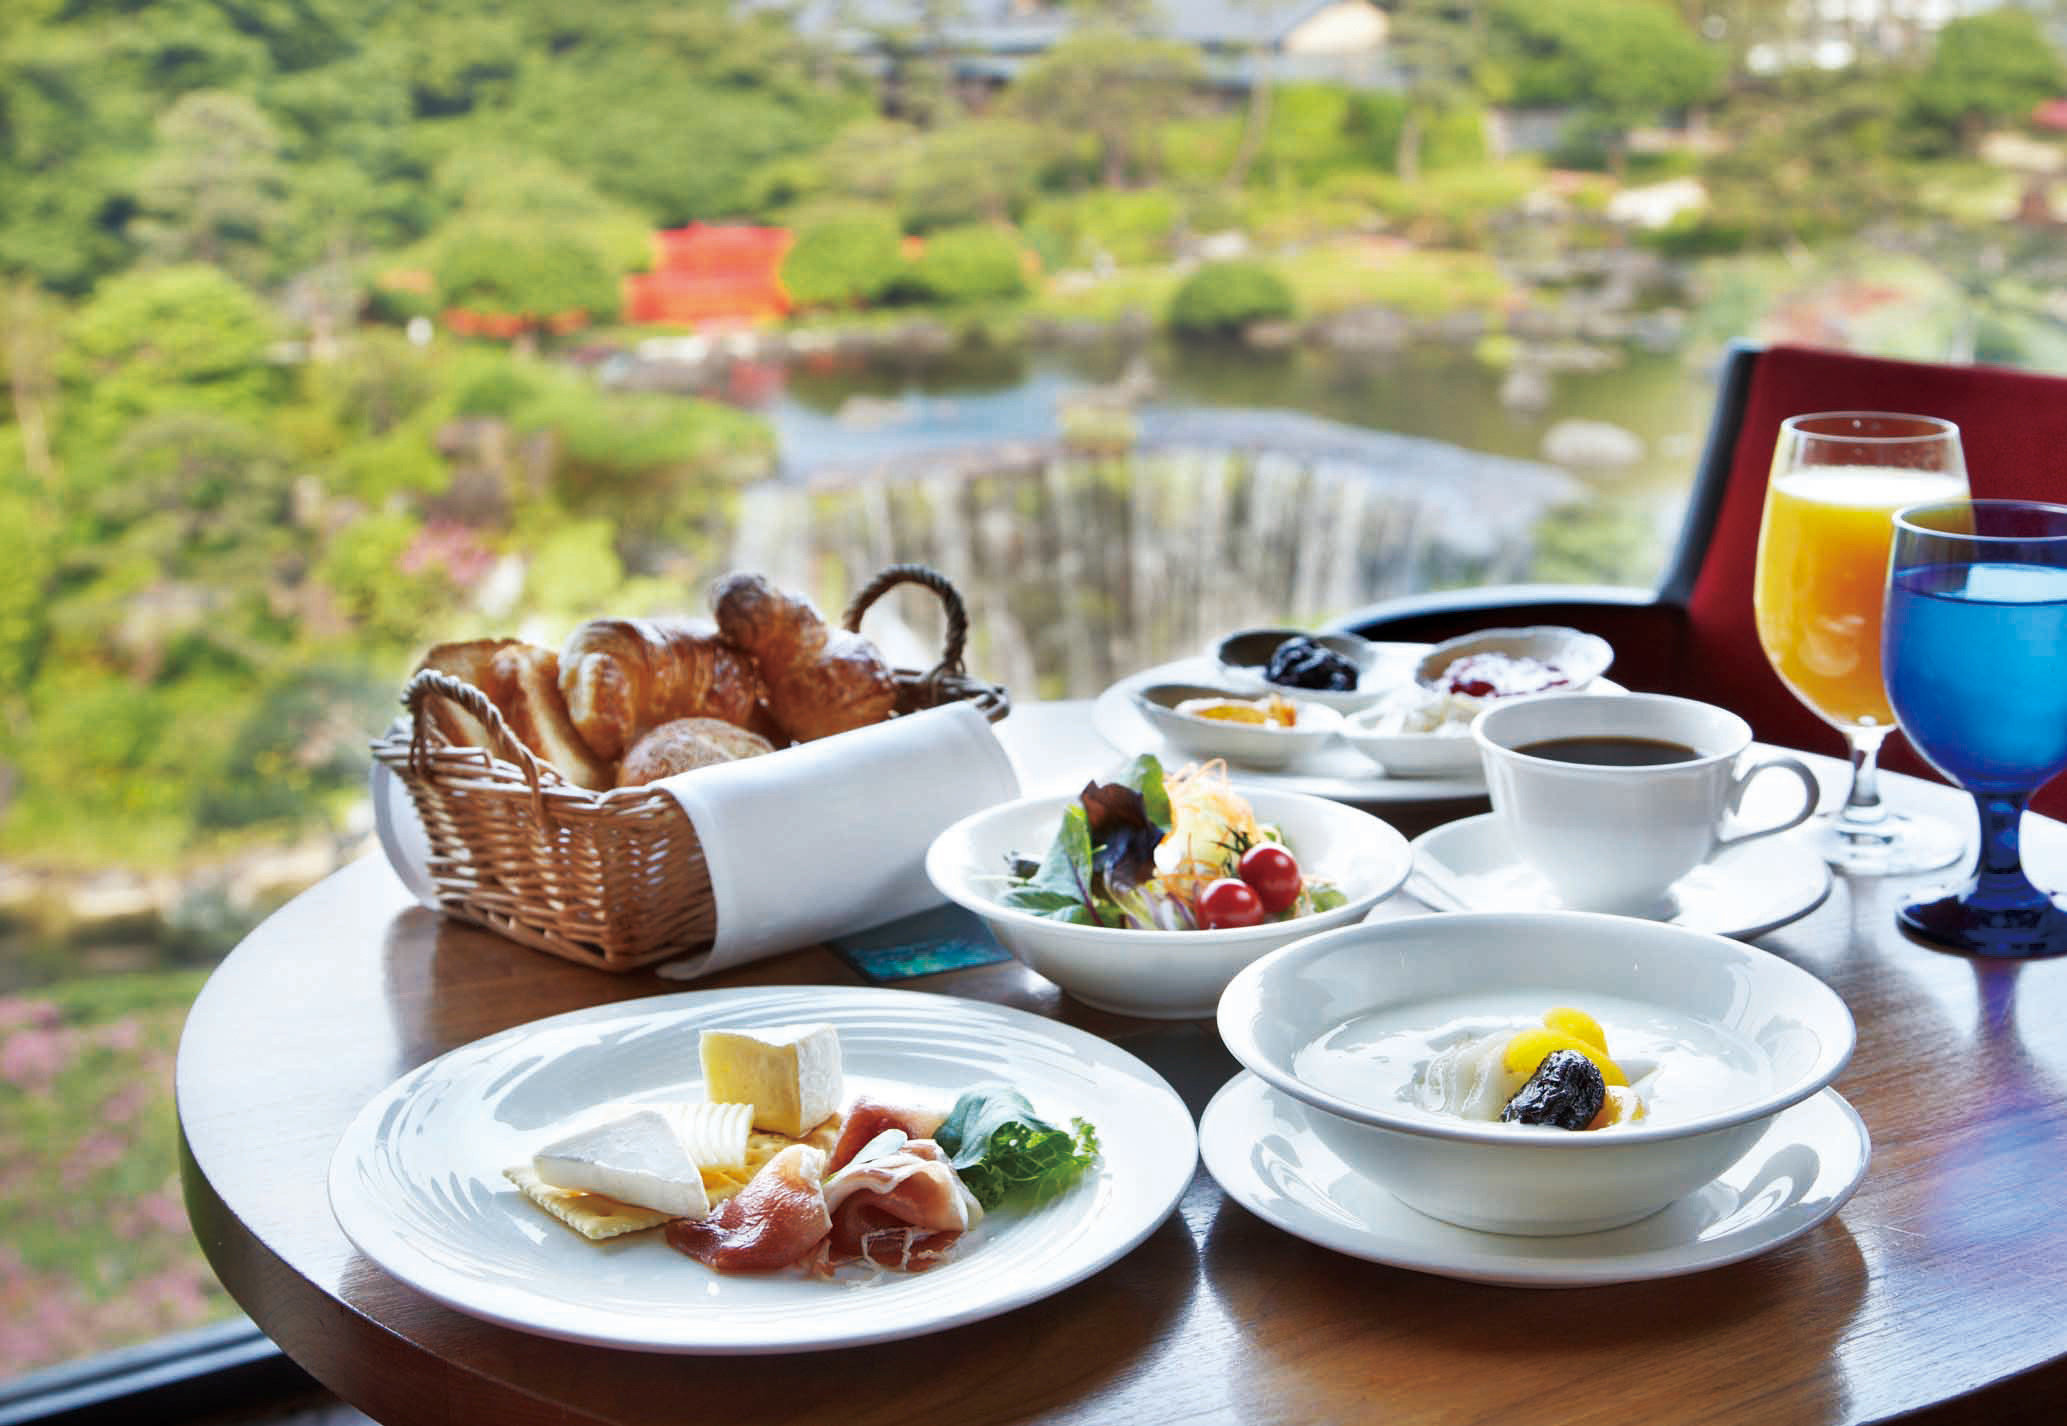 City Dining Drink Eat Outdoors Resort Rooftop Waterfall plate food Picnic breakfast lunch brunch restaurant cuisine